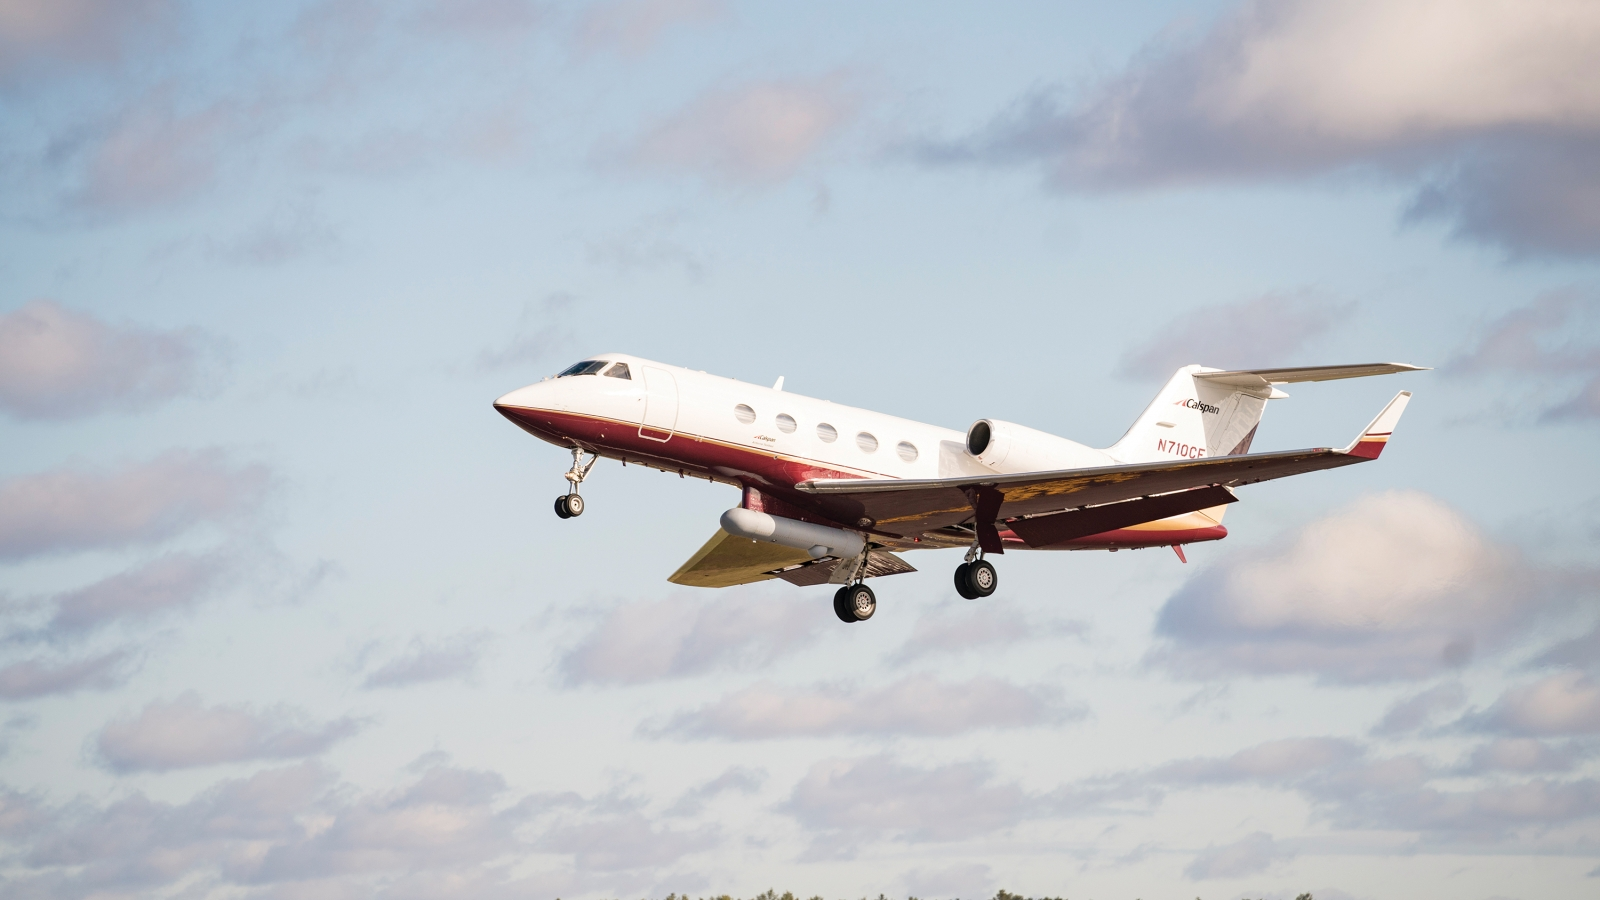 A Gulfstream III aircraft is shown with a PACECR communications pod attached.